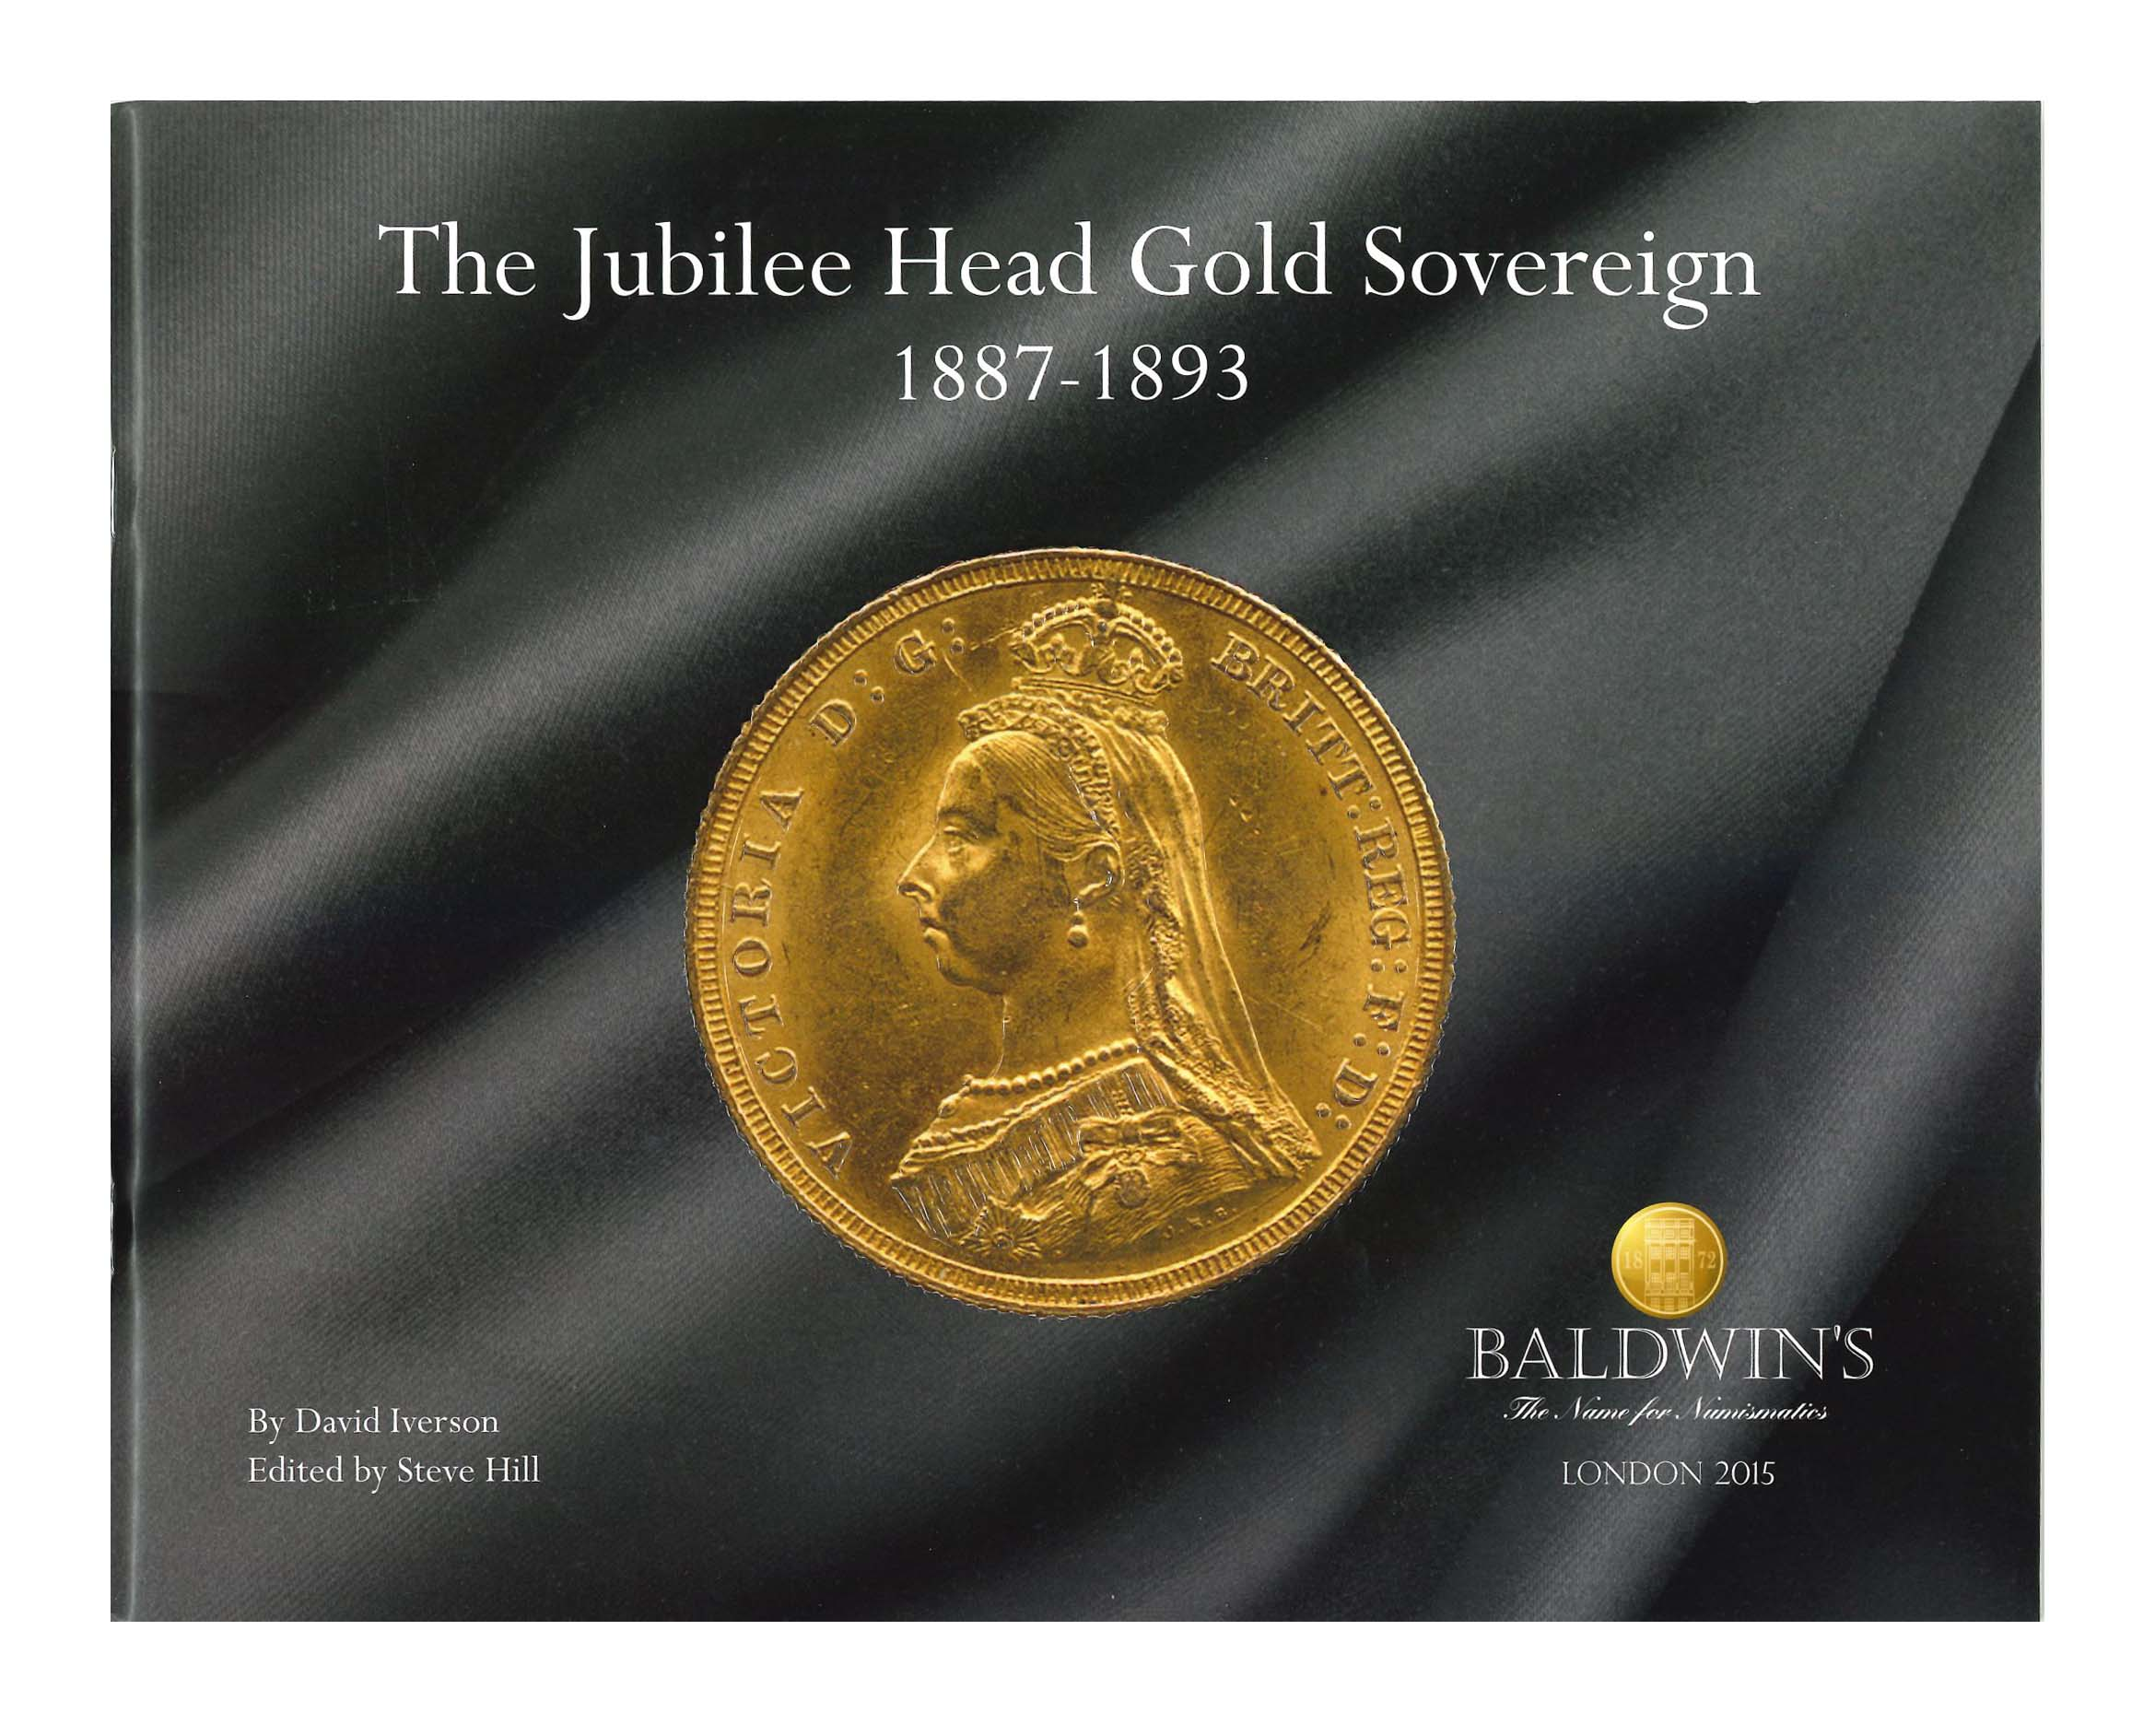 The Jubilee Head Gold Sovereign 1887-1893